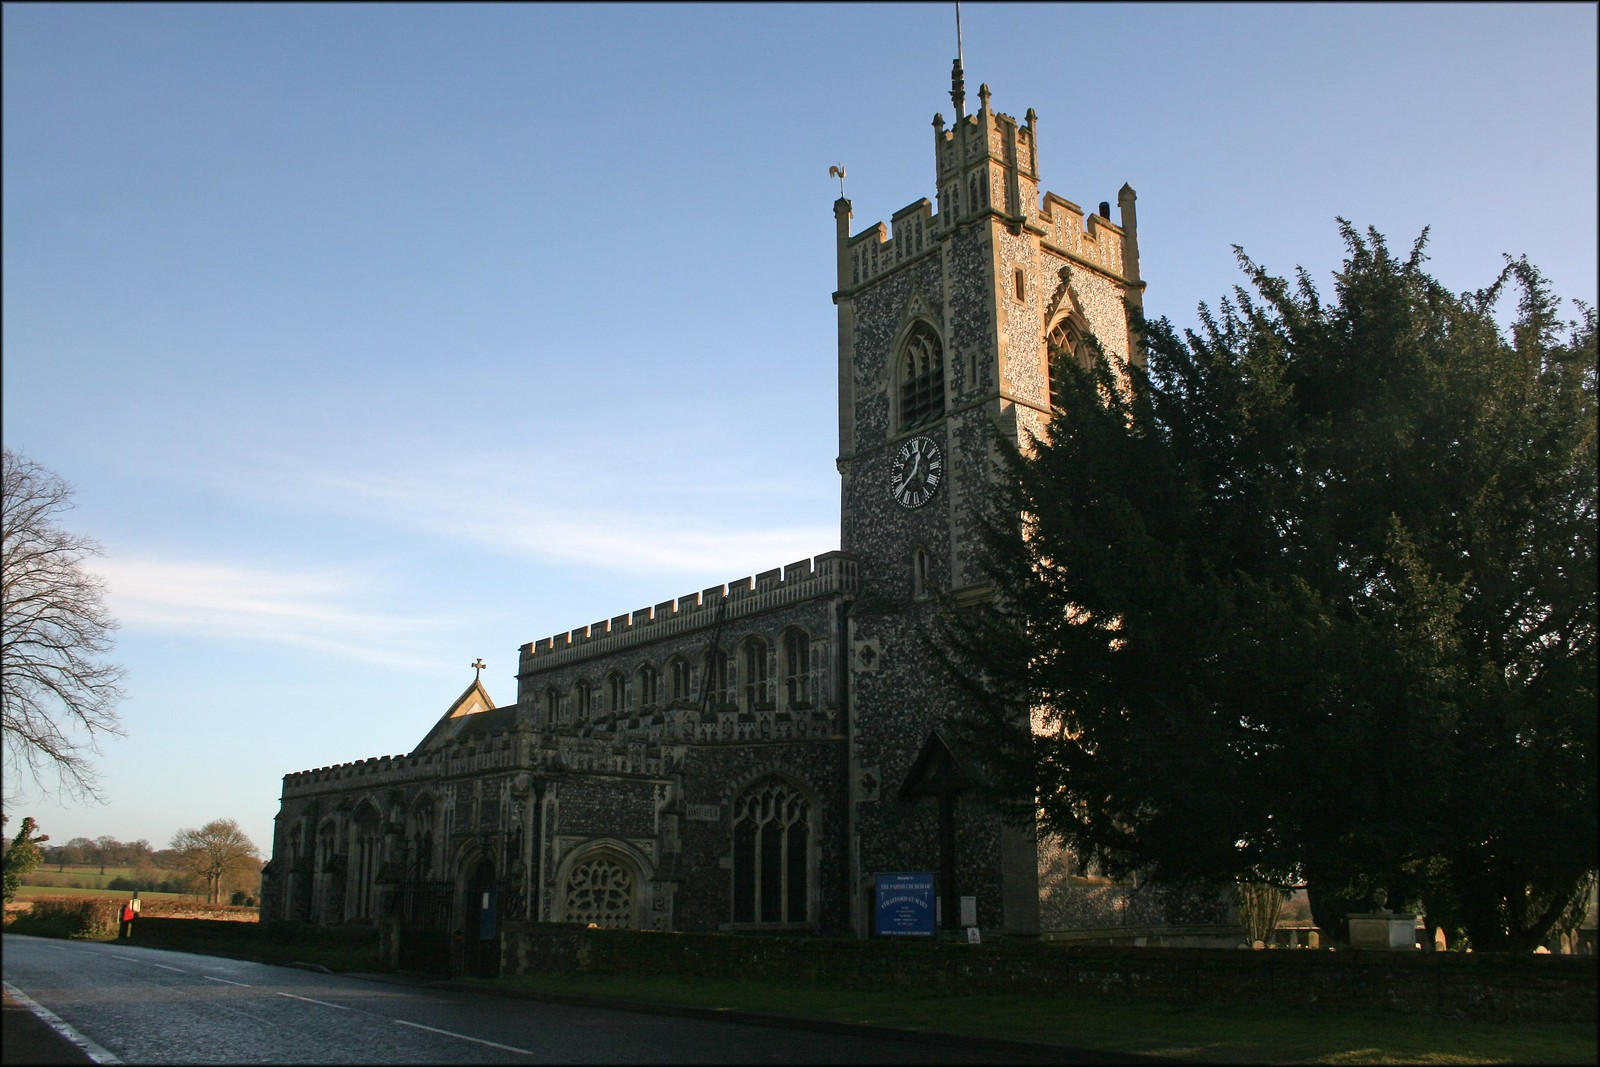 Straford St Mary church